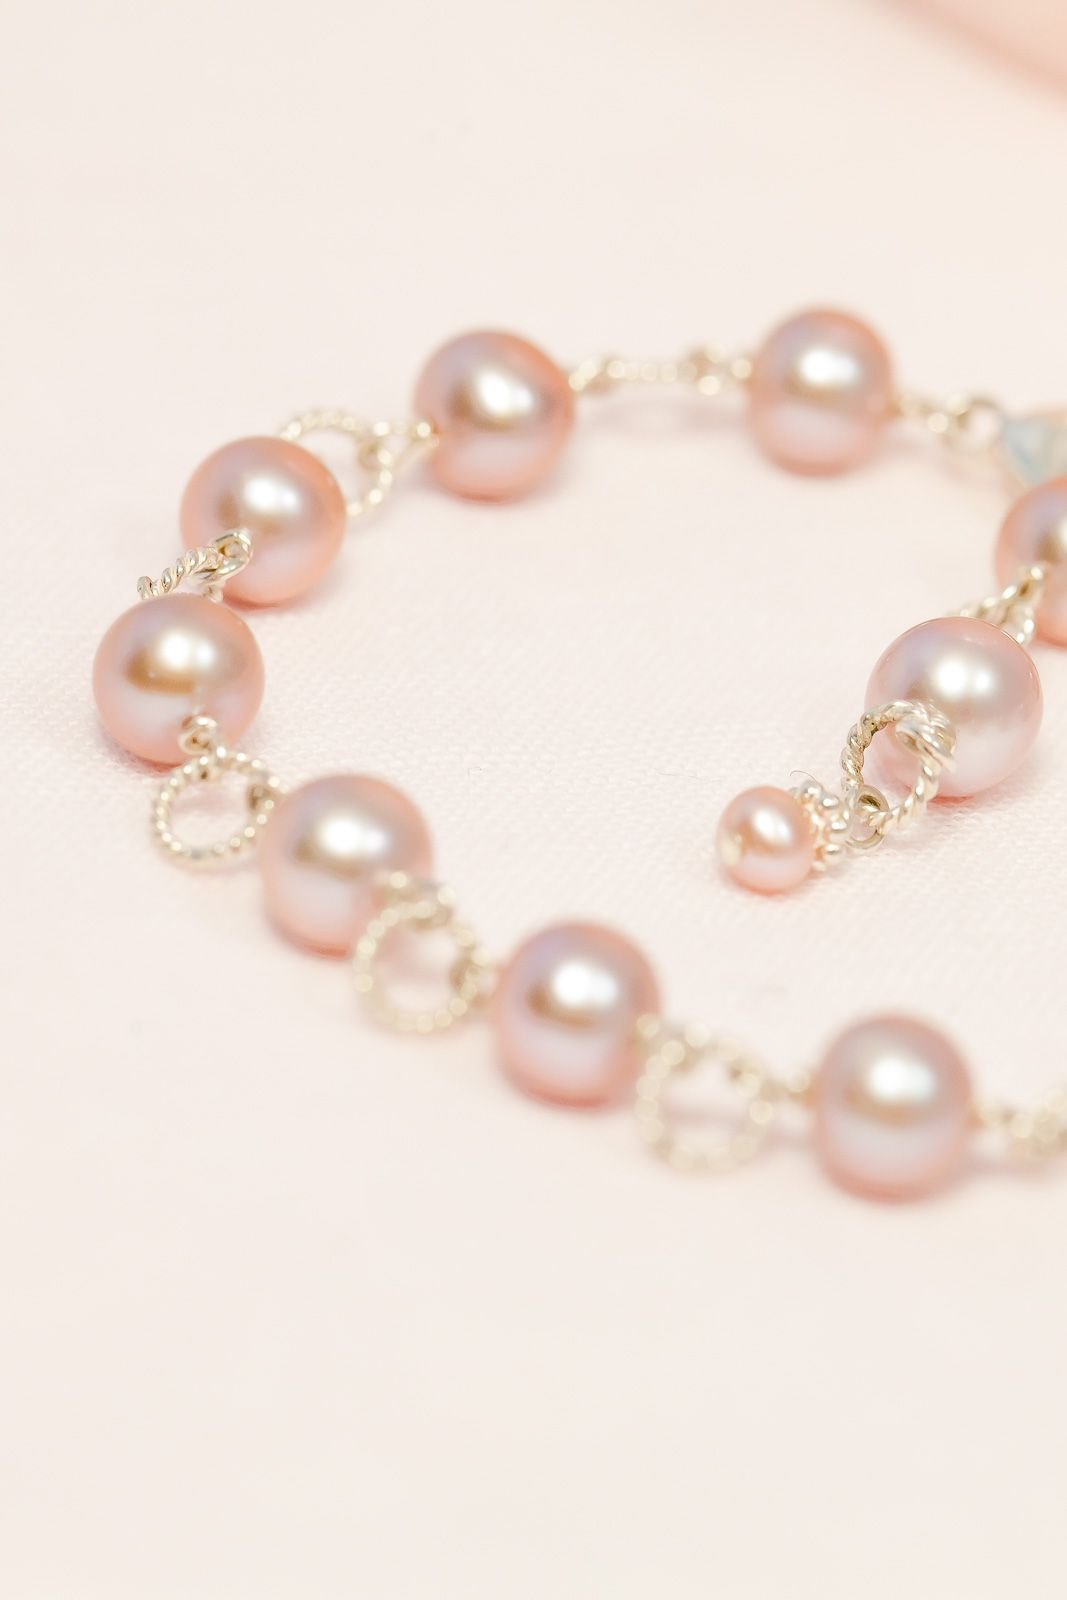 sea first lifestyle buy news tiffany how fake your queen south accessorise pearl real necklace to like pearls a mikimoto